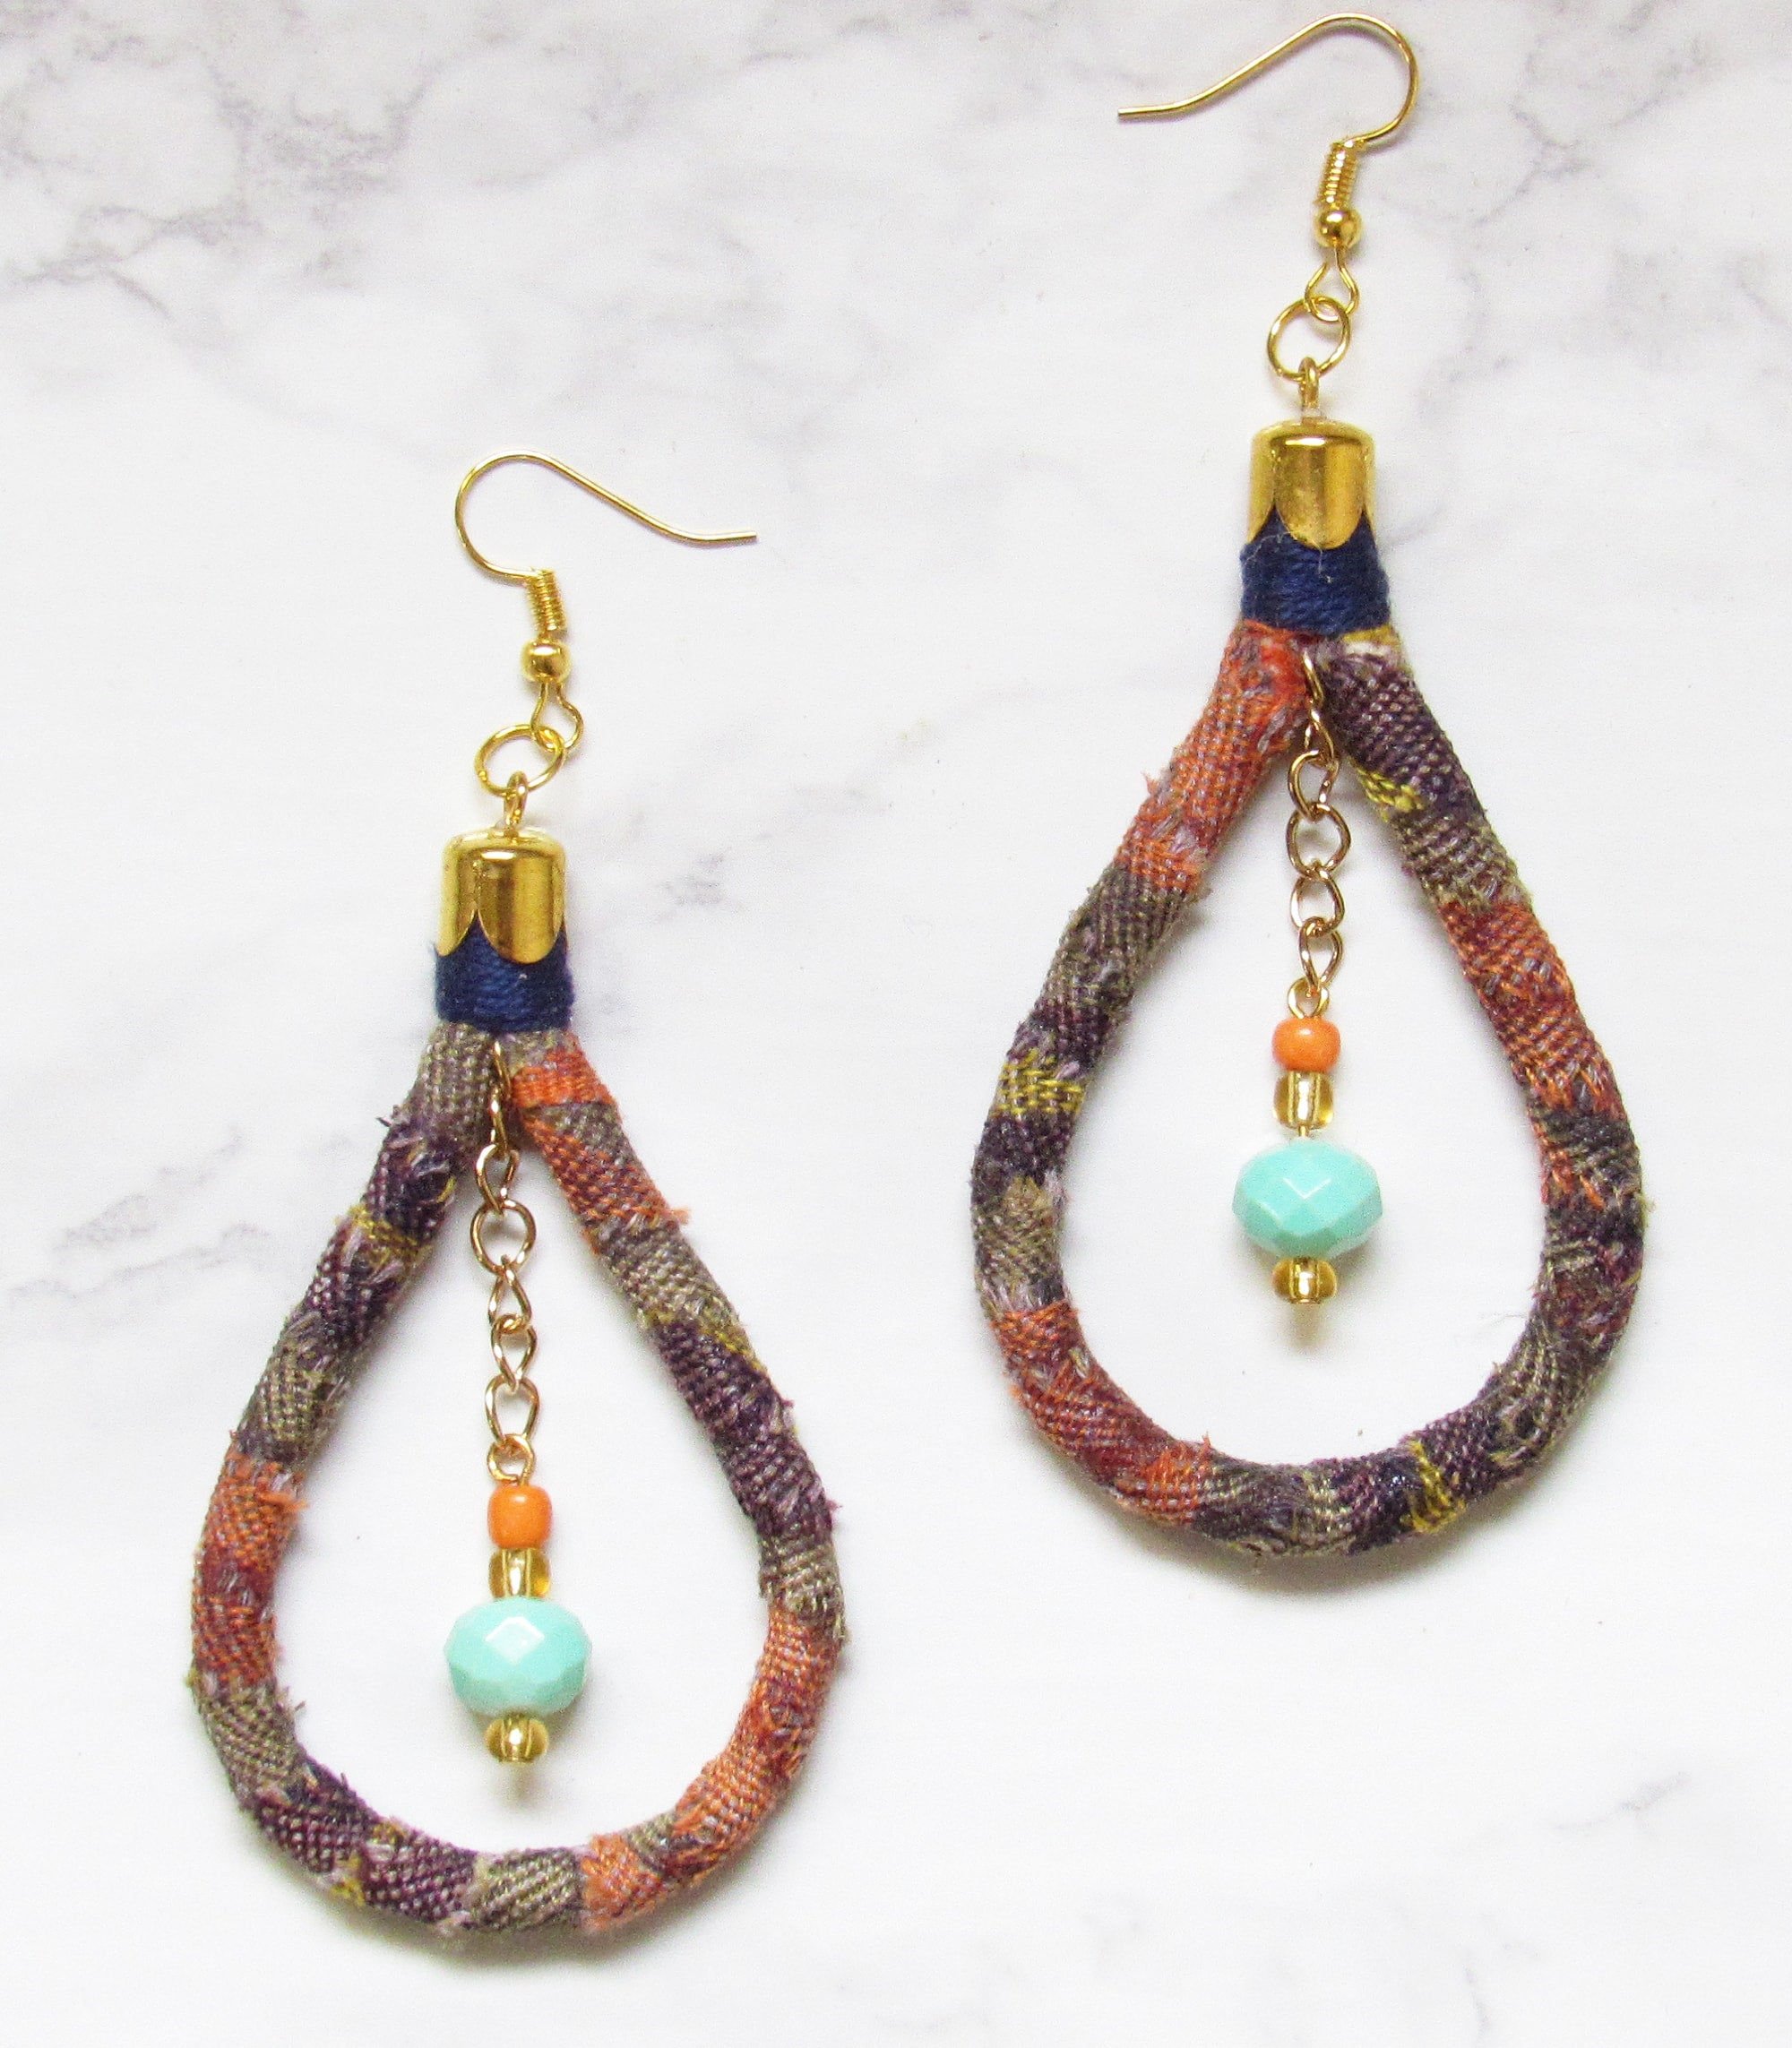 Kantarines Bead Earrings - Turquoise